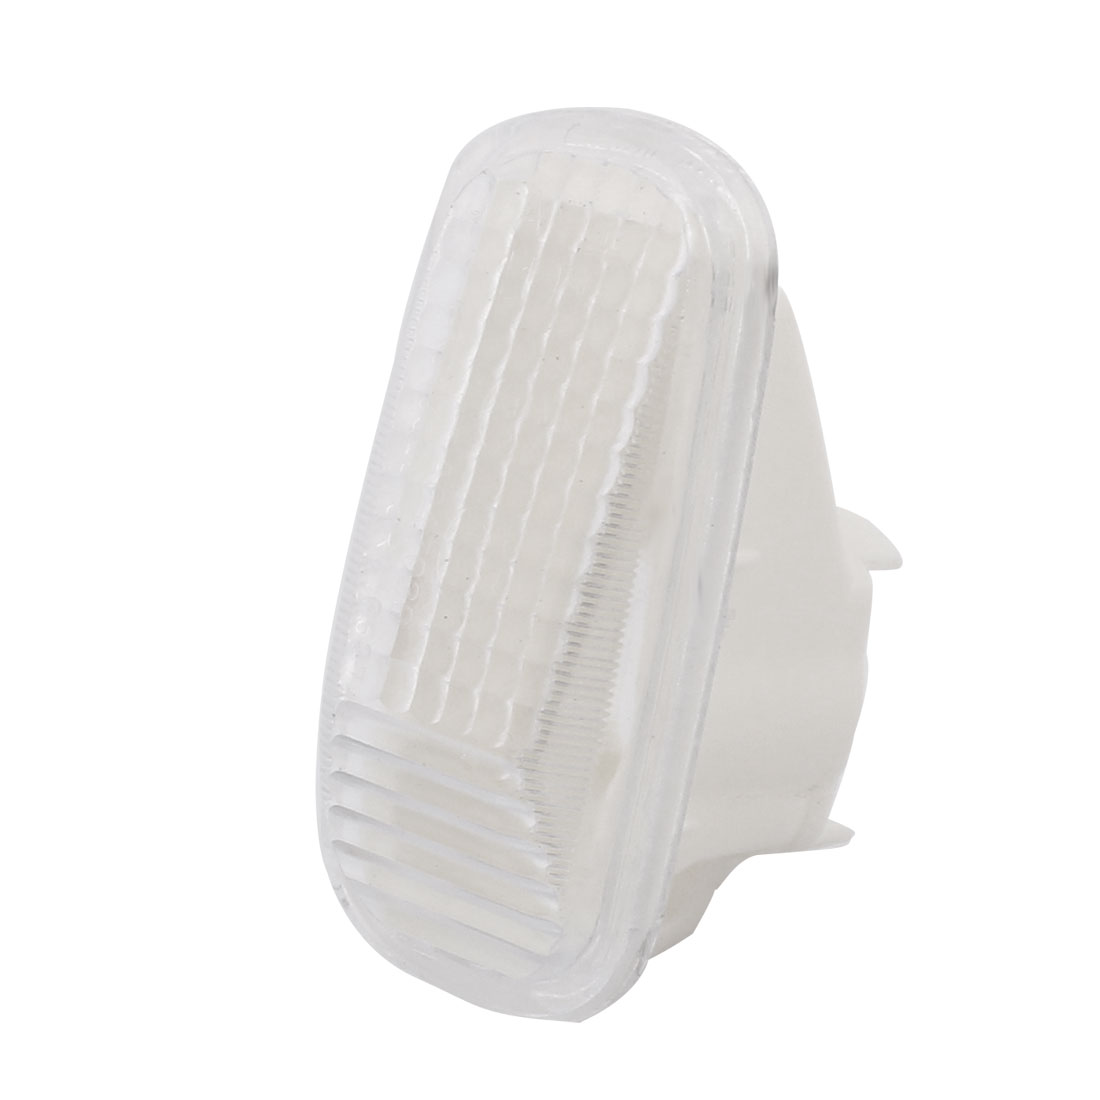 White Plastic Car Side Marker Lamp Base Cover 34301-S5H-T02 internal